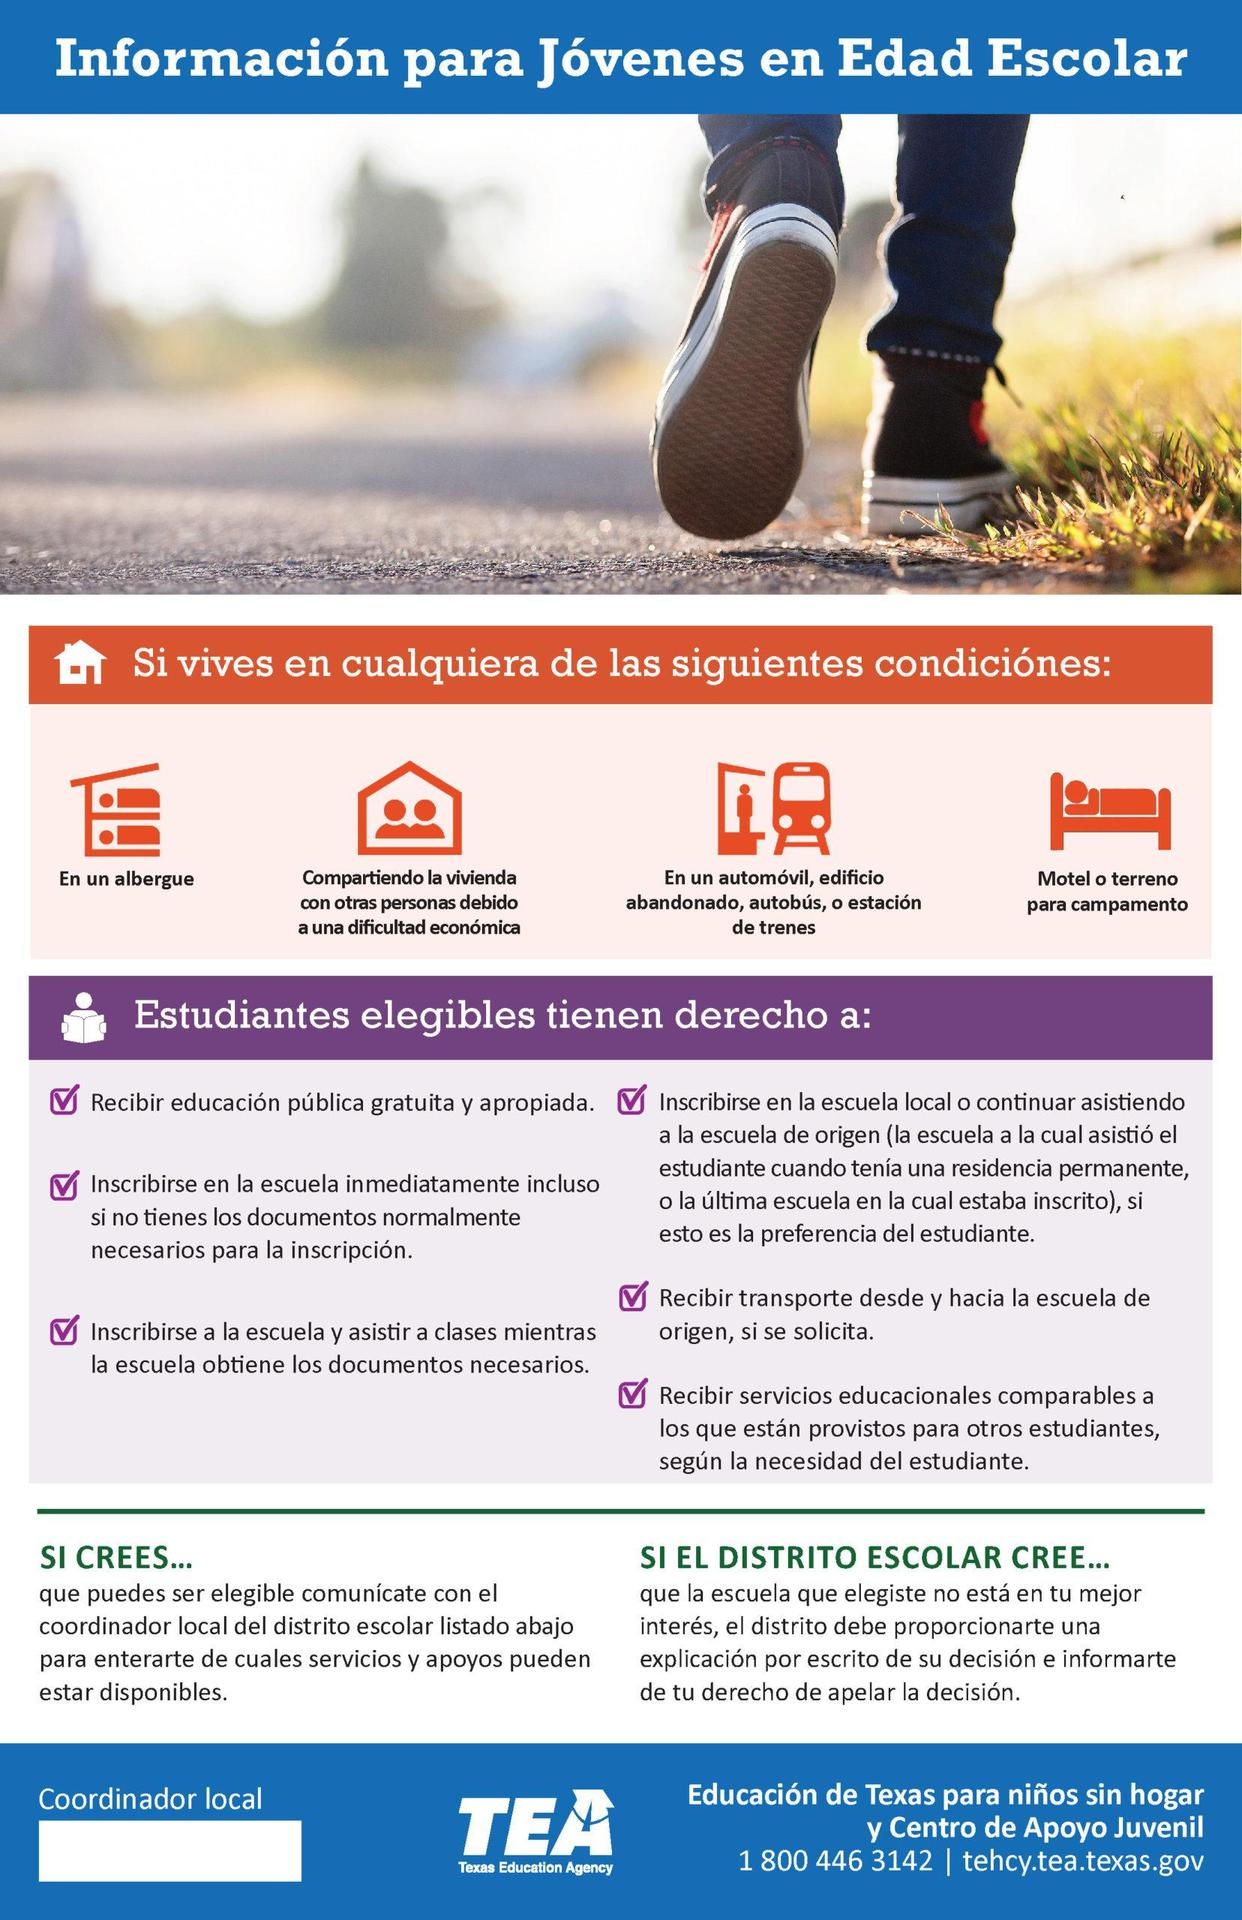 Information for Youth - Spanish